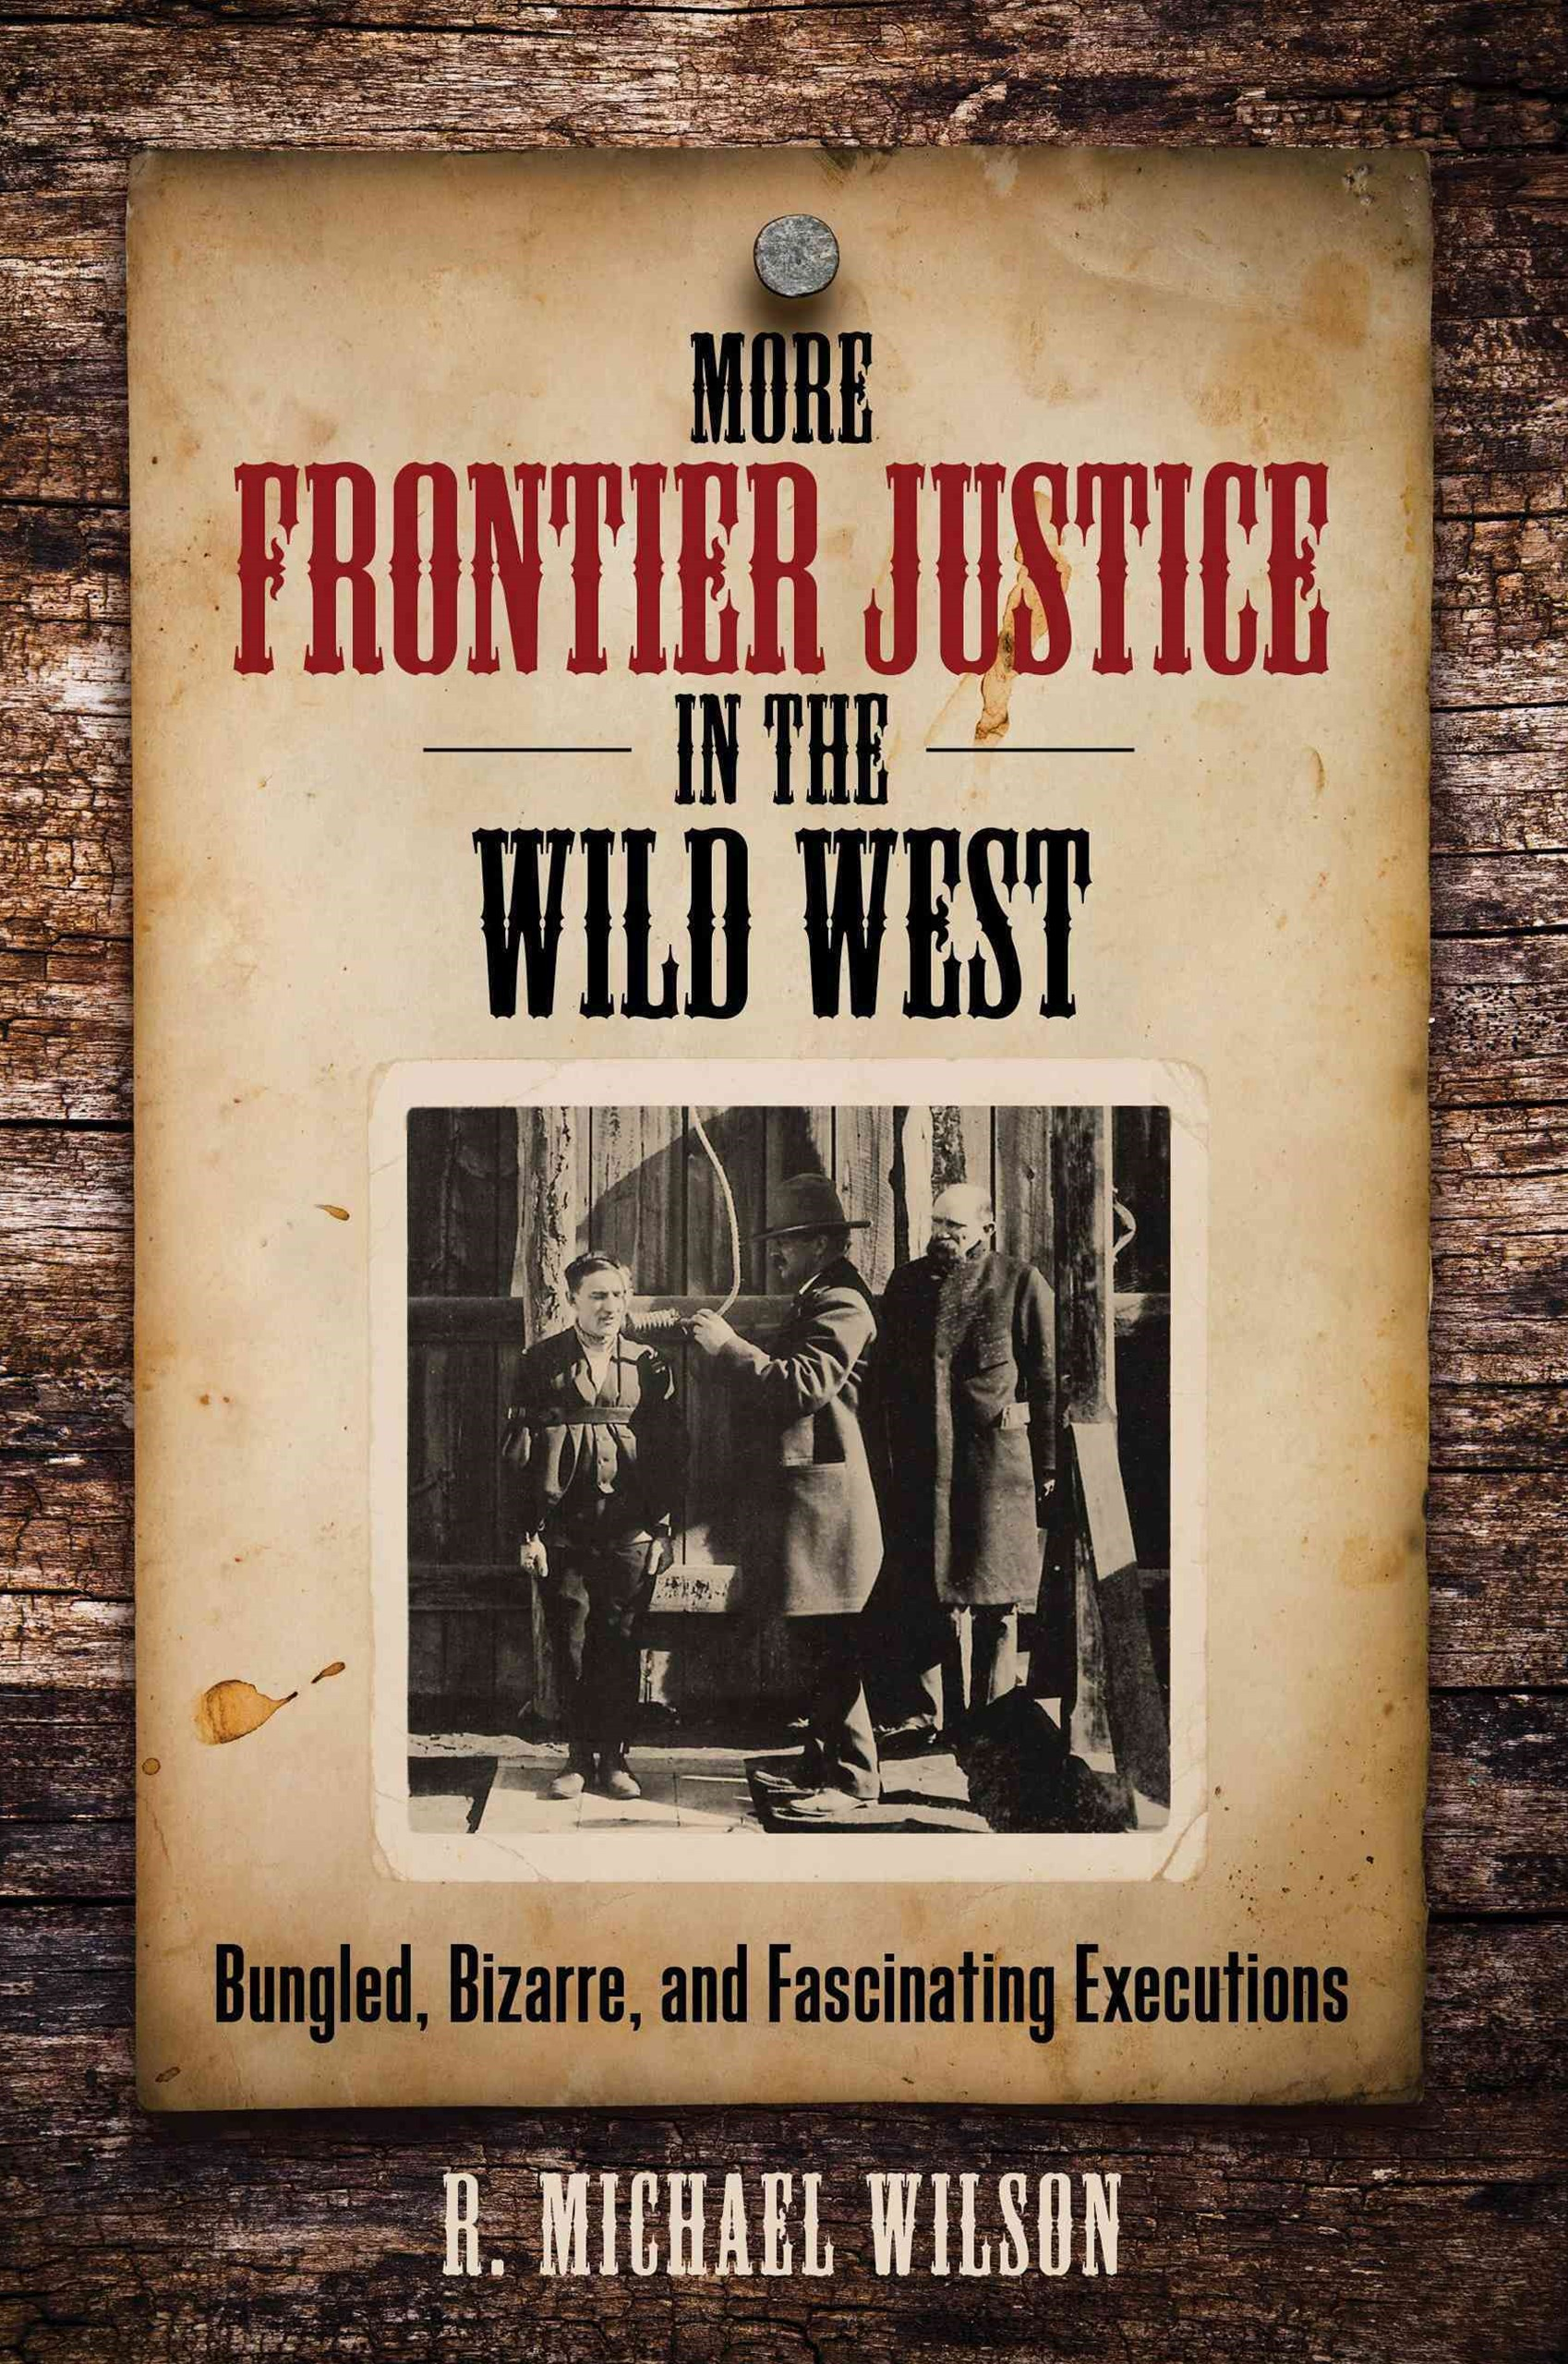 More Frontier Justice in the Wild West